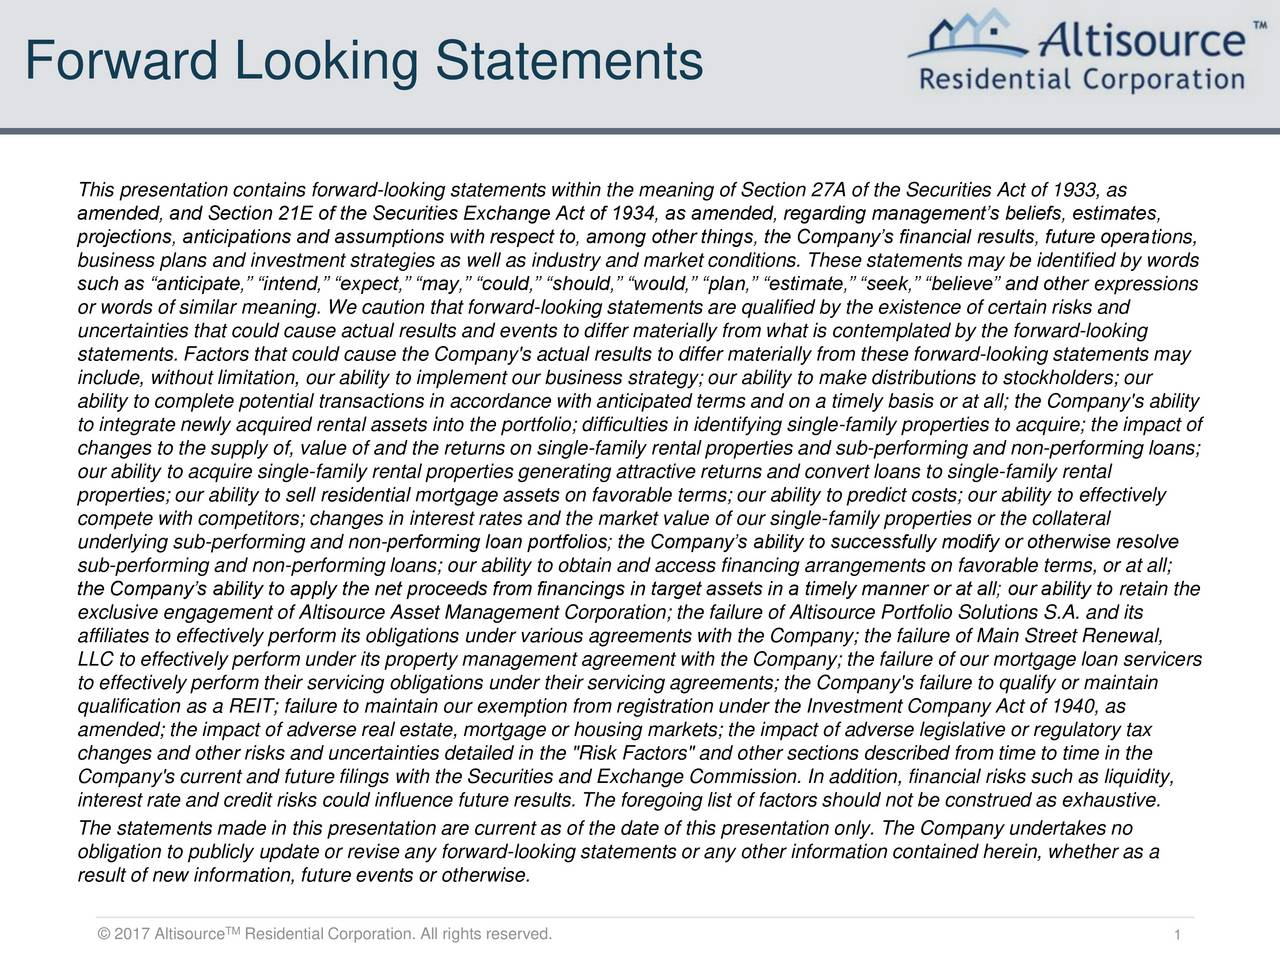 This presentation contains forward-looking statements within the meaning of Section 27A of the Securities Act of 1933, as amended, and Section 21E of the Securities Exchange Act of 1934, as amended, regarding managements beliefs, estimates, projections, anticipations and assumptions with respect to, among other things, the Companys financial results, future operations, business plans and investment strategies as well as industry and market conditions. These statements may be identified by words such as anticipate, intend, expect, may, could, should, would, plan, estimate, seek, believe and other expressions or words of similar meaning. We caution that forward-looking statements are qualified by the existence of certain risks and uncertainties that could cause actual results and events to differ materially from what is contemplated by the forward-looking statements. Factors that could cause the Company's actual results to differ materially from these forward-looking statements may include, without limitation, our ability to implement our business strategy; our ability to make distributions to stockholders; our ability to complete potential transactions in accordance with anticipated terms and on a timely basis or at all; the Company's ability to integrate newly acquired rental assets into the portfolio; difficulties in identifying single-family properties to acquire; the impact of changes to the supply of, value of and the returns on single-family rental properties and sub-performing and non-performing loans; our ability to acquire single-family rental properties generating attractive returns and convert loans to single-family rental properties; our ability to sell residential mortgage assets on favorable terms; our ability to predict costs; our ability to effectively compete with competitors; changes in interest rates and the market value of our single-family properties or the collateral underlying sub-performing and non-performing loan portfolios; the Companys abil